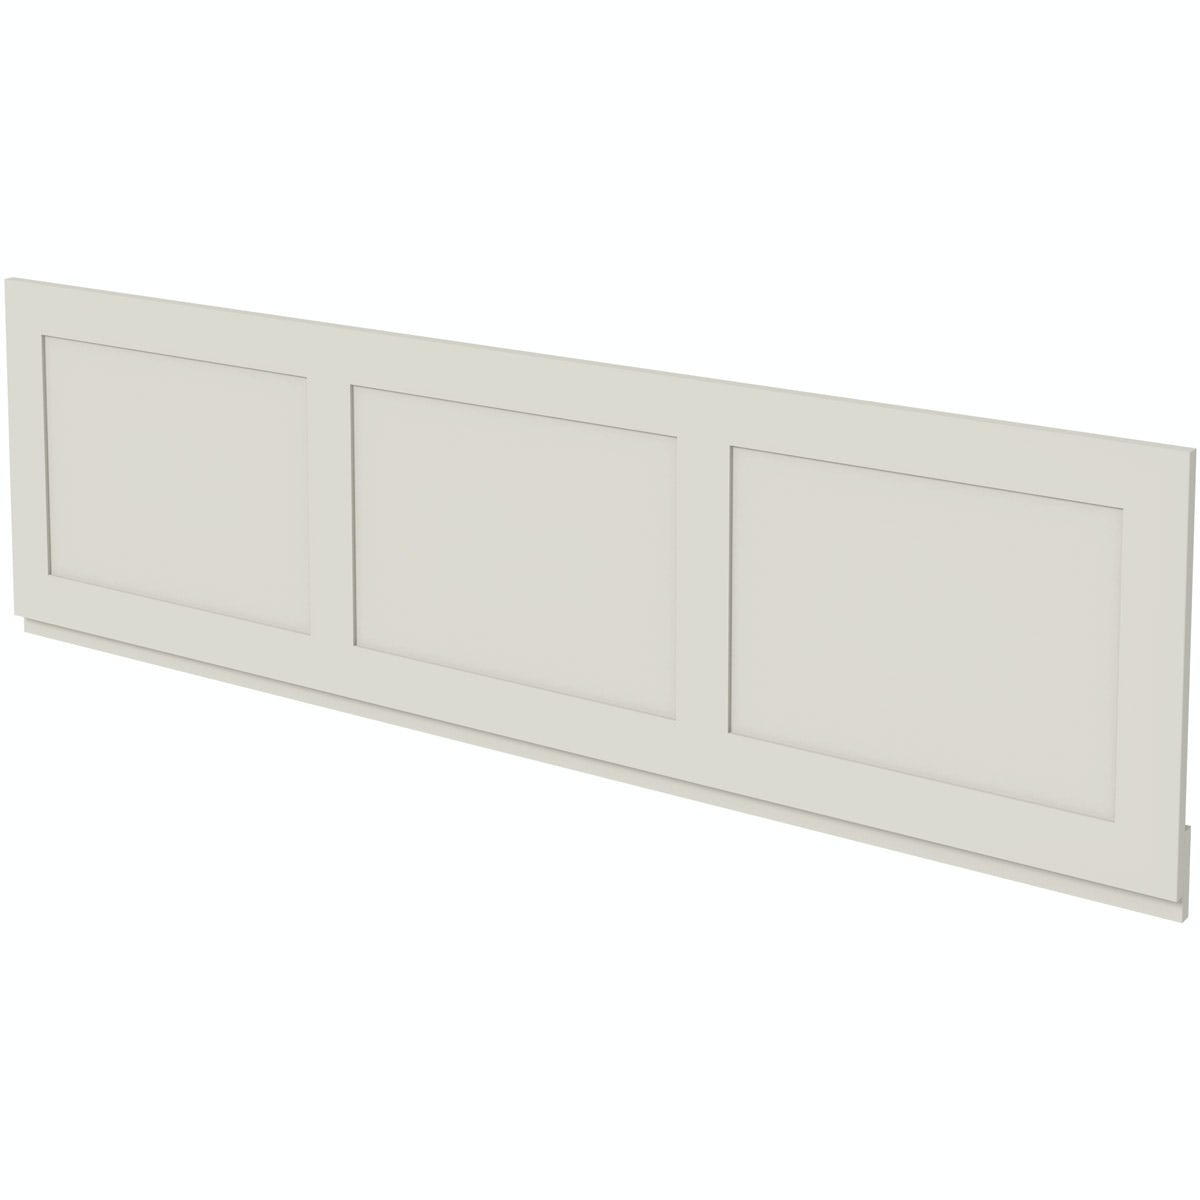 The Bath Co. Camberley ivory bath front panel 1700mm